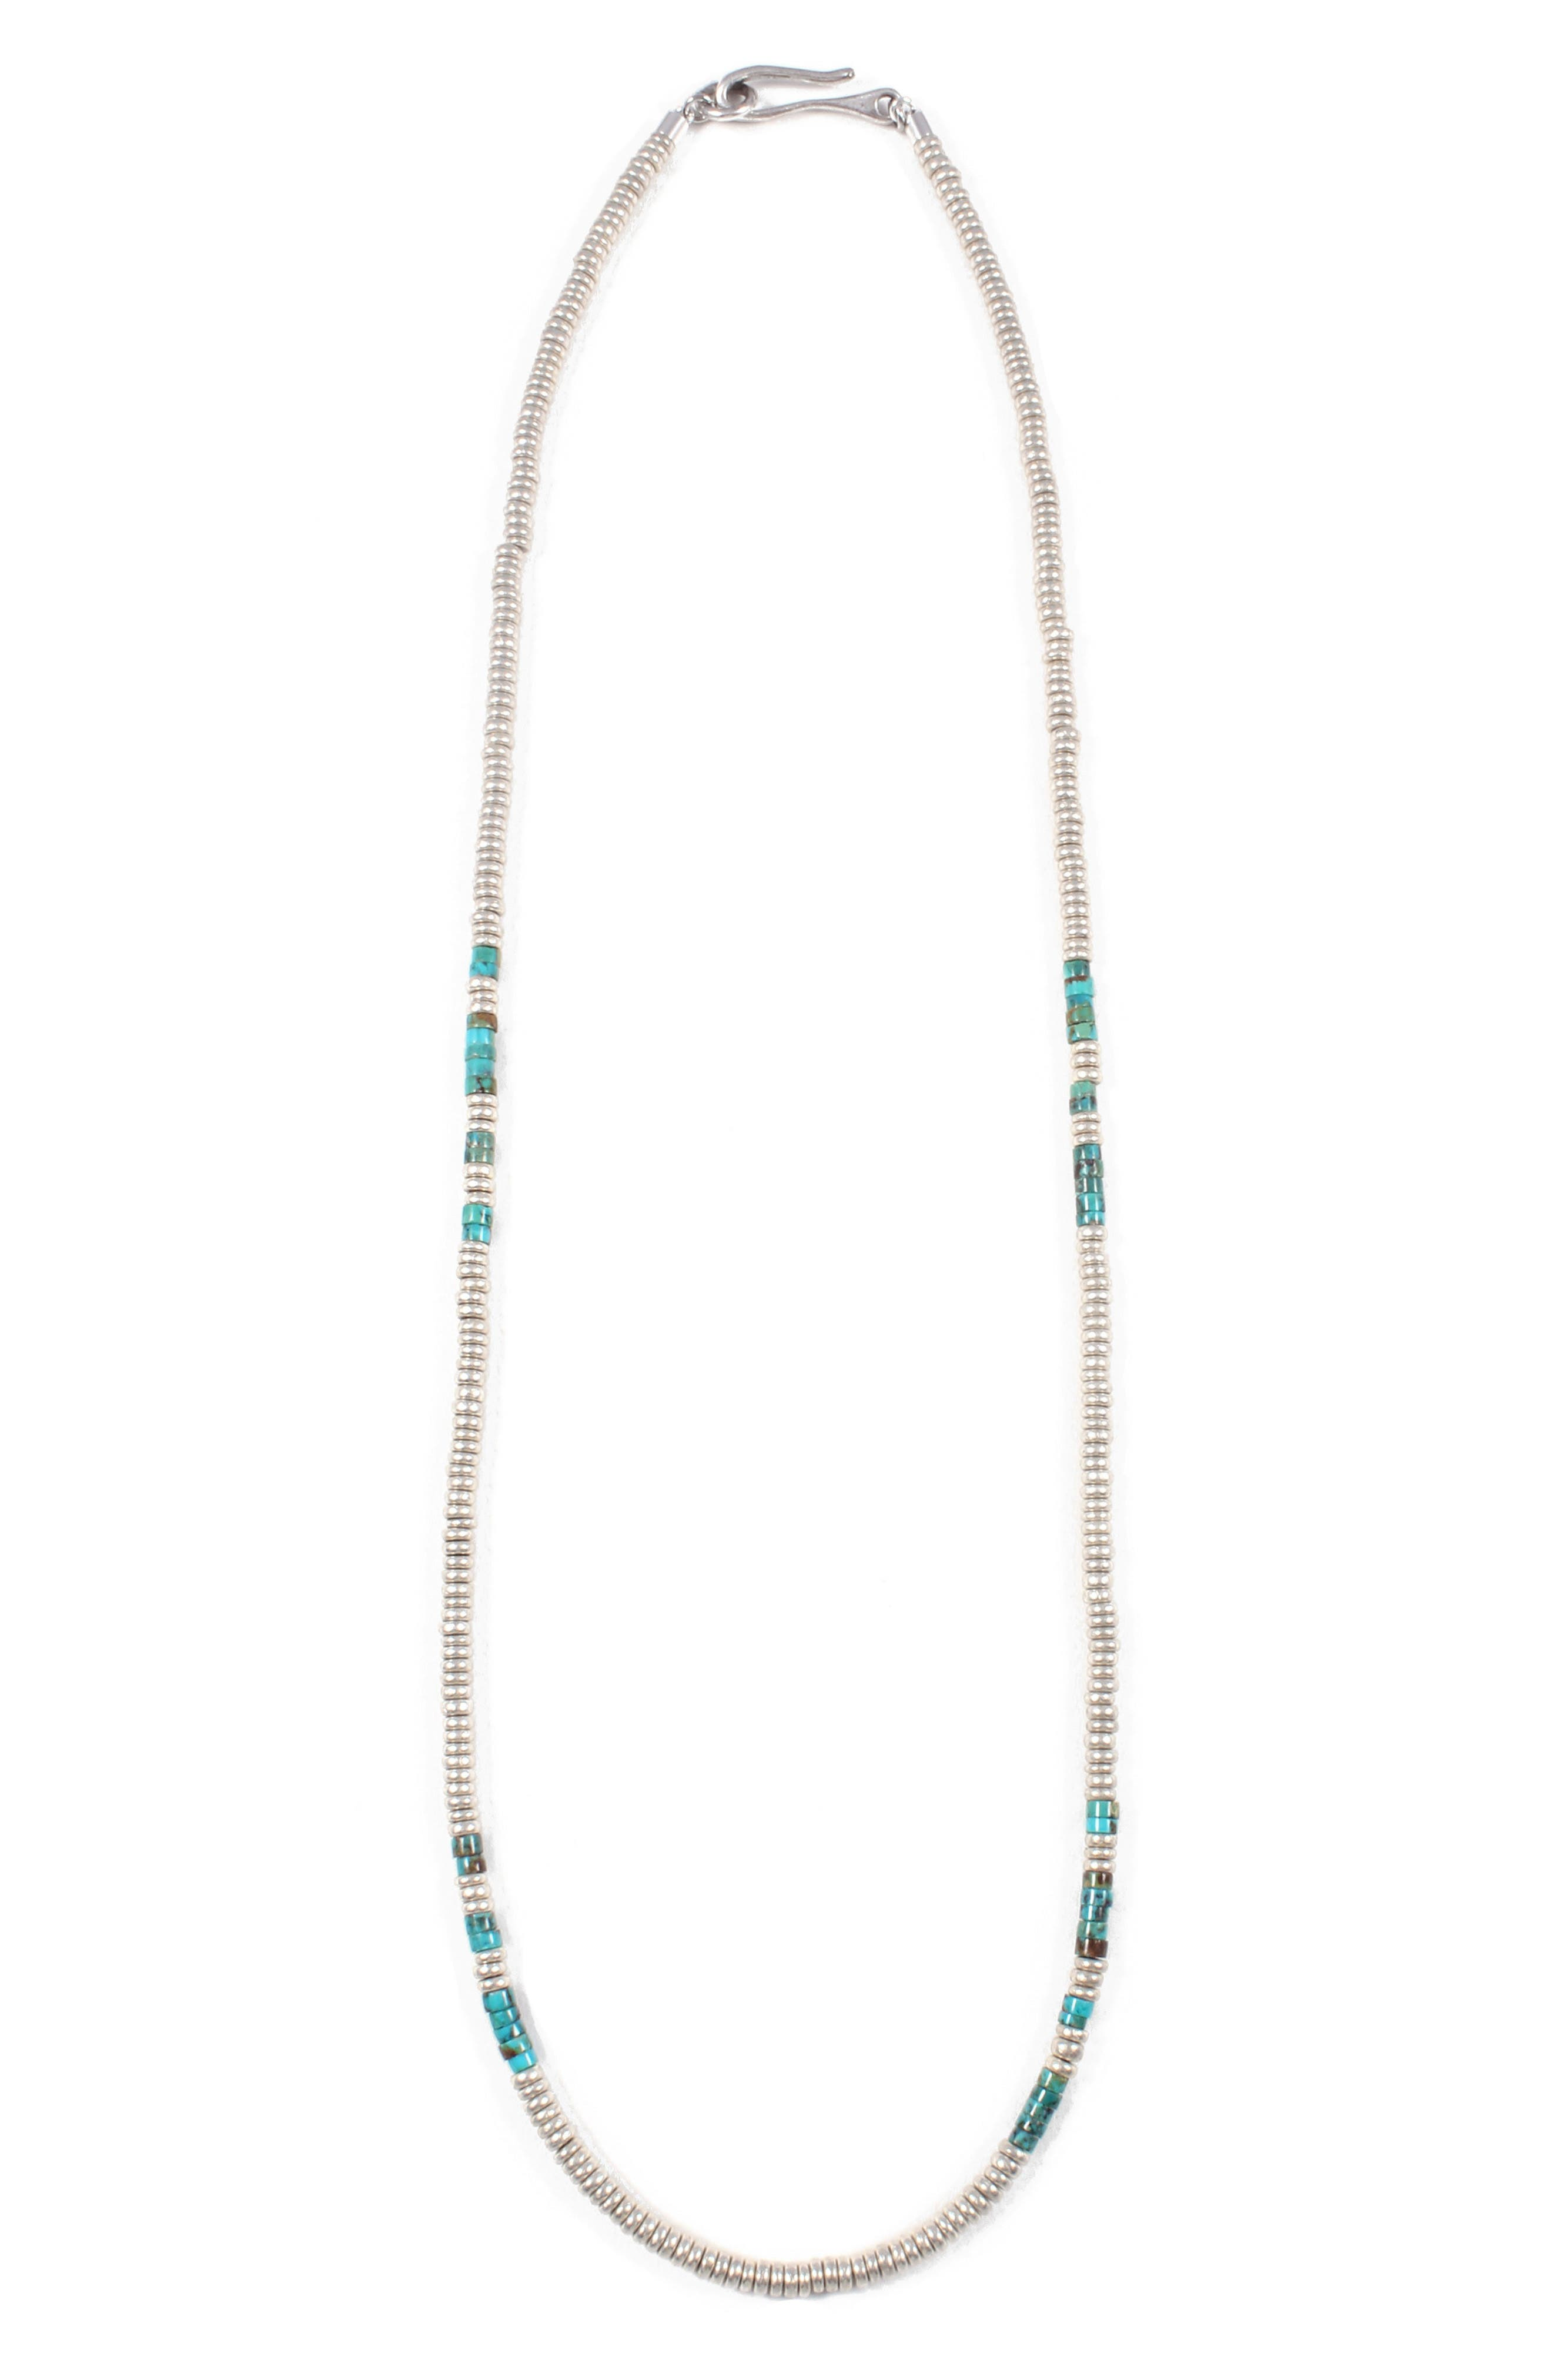 Luck Morse Necklace,                         Main,                         color, Silver / Turquoise